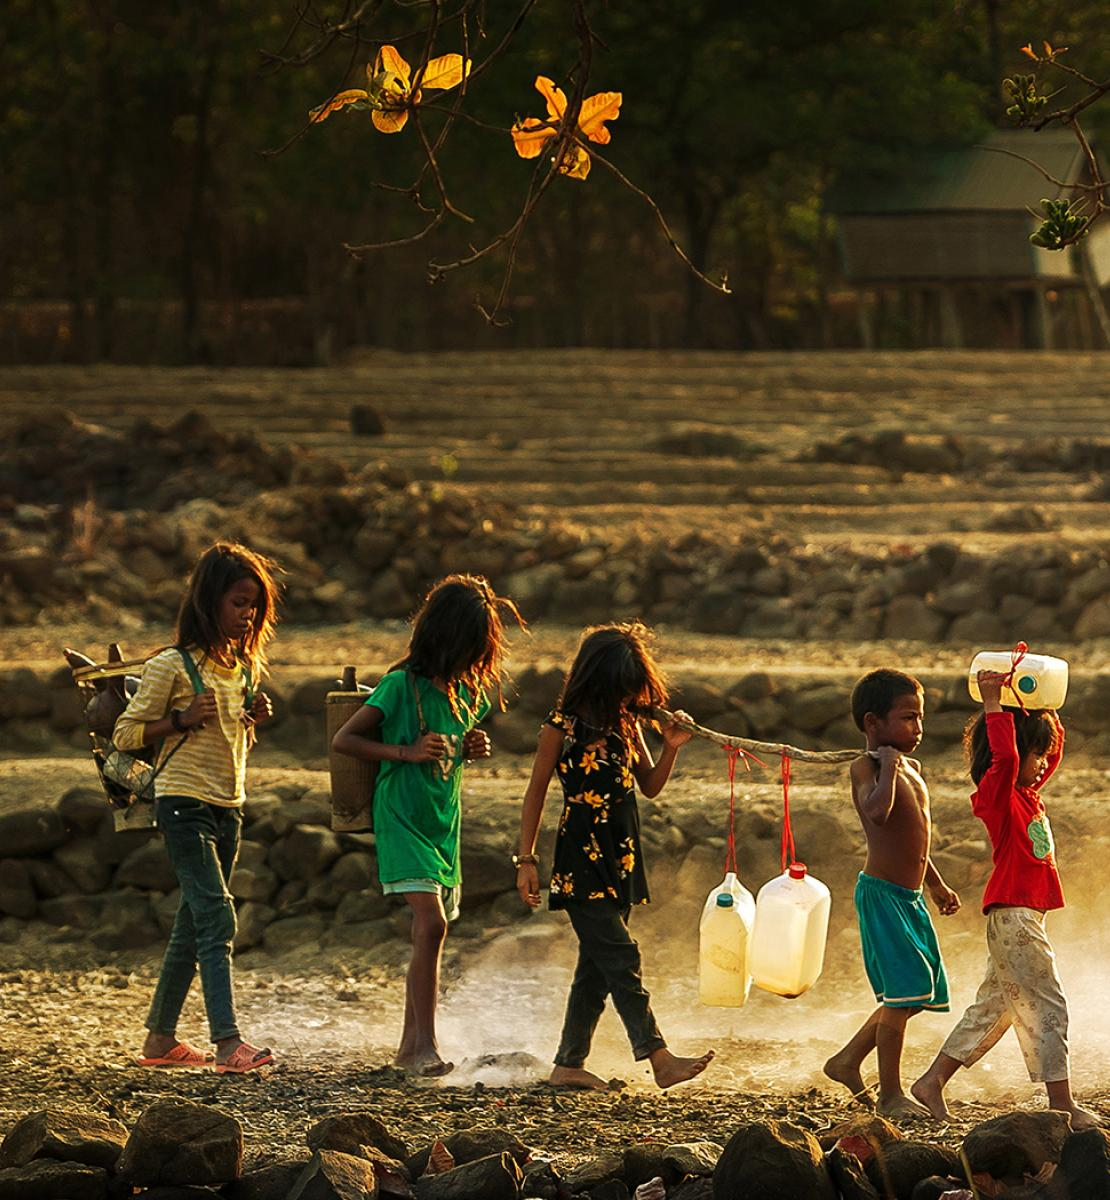 Little children walk in a line as they all hold a large stick holding jugs of water.